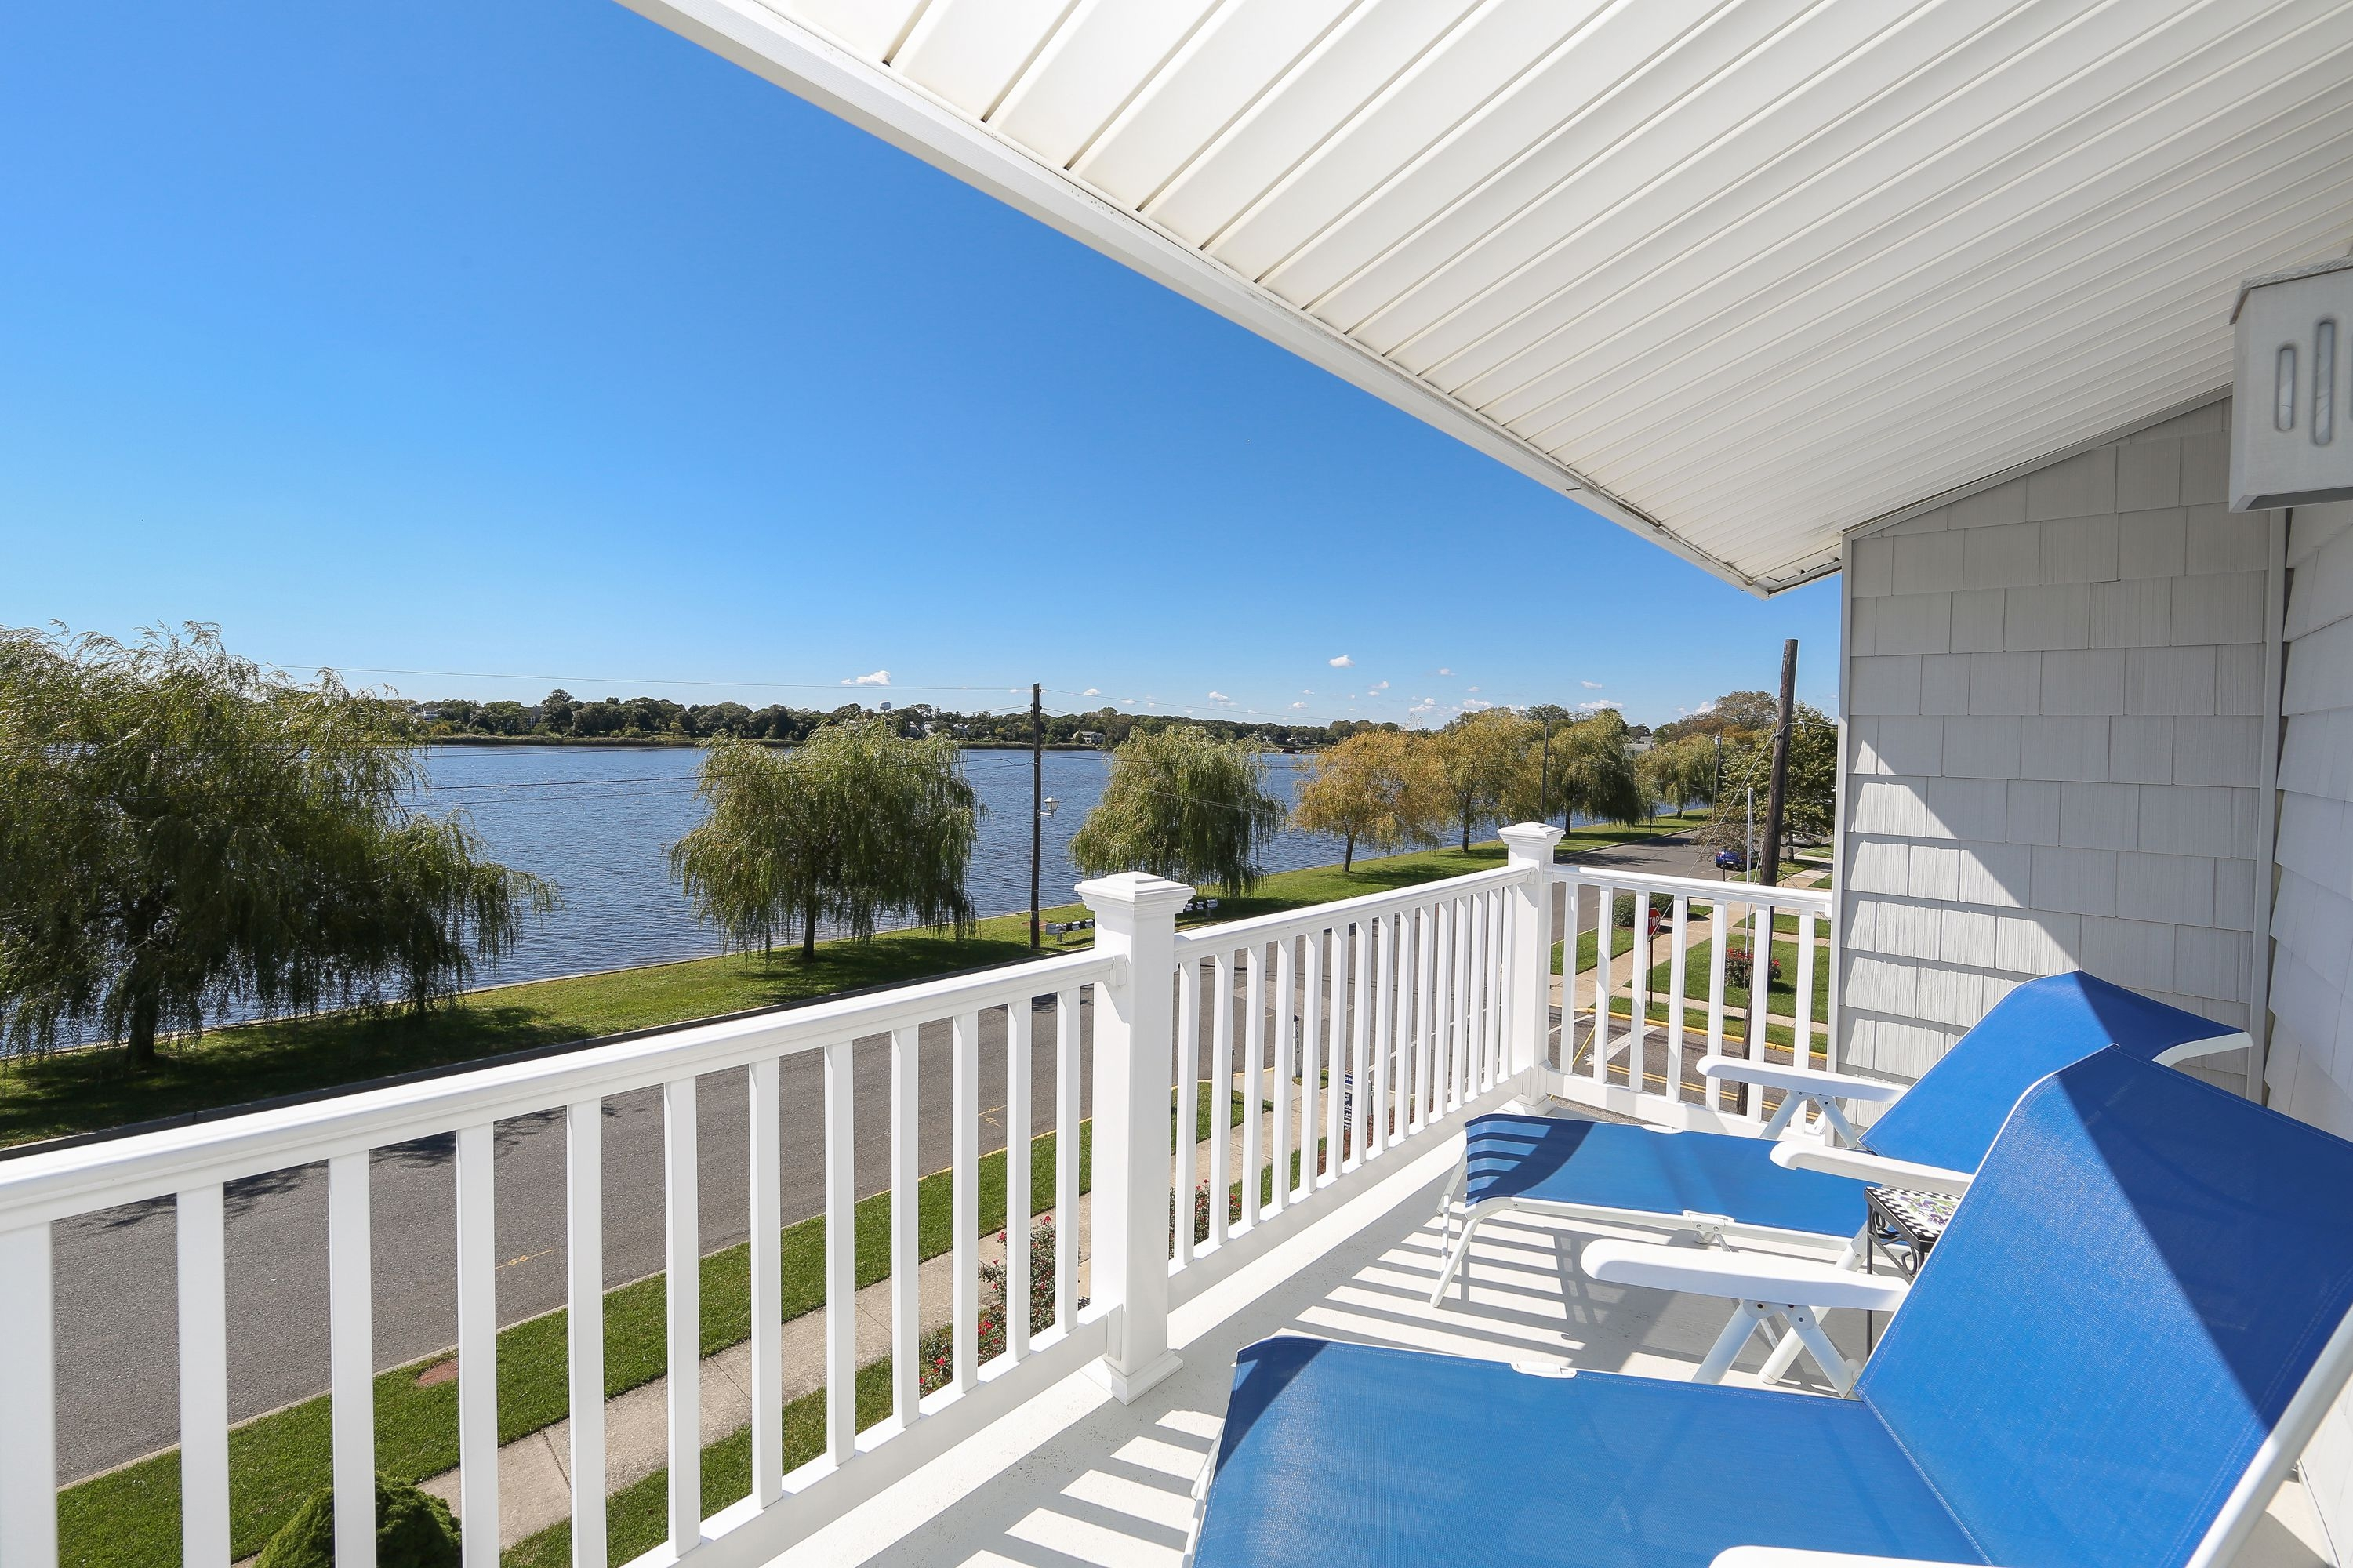 Single Family Home for Sale at The Perfect Beach House 218 Ocean Rd Spring Lake, New Jersey 07762 United States